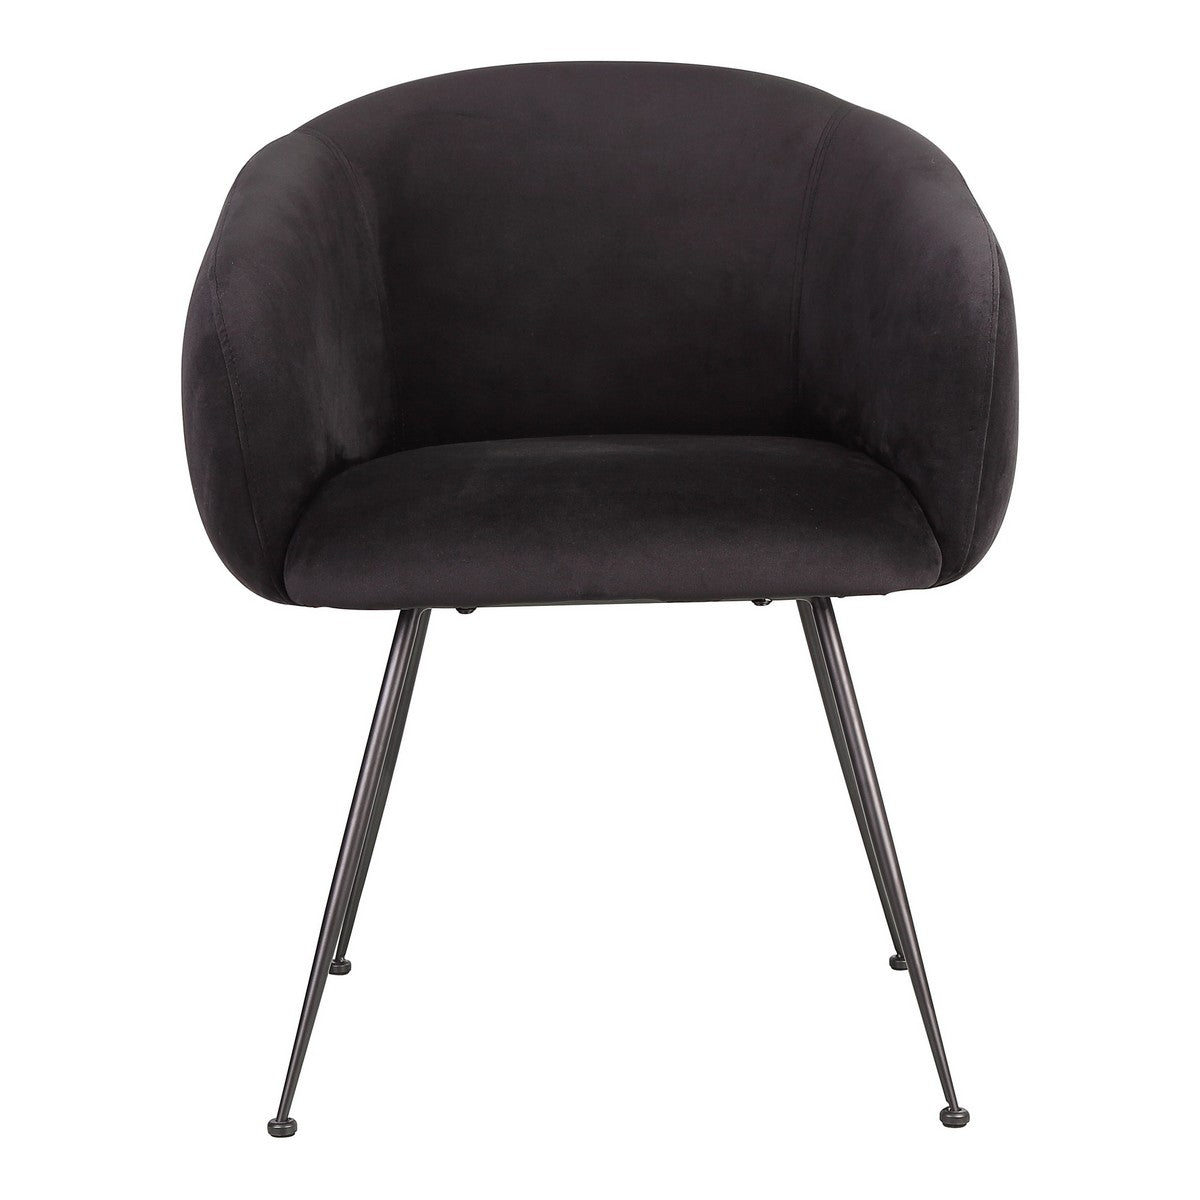 Moe's Home Collection Clover Dining Chair Black - EH-1108-02 - Moe's Home Collection - Dining Chairs - Minimal And Modern - 1